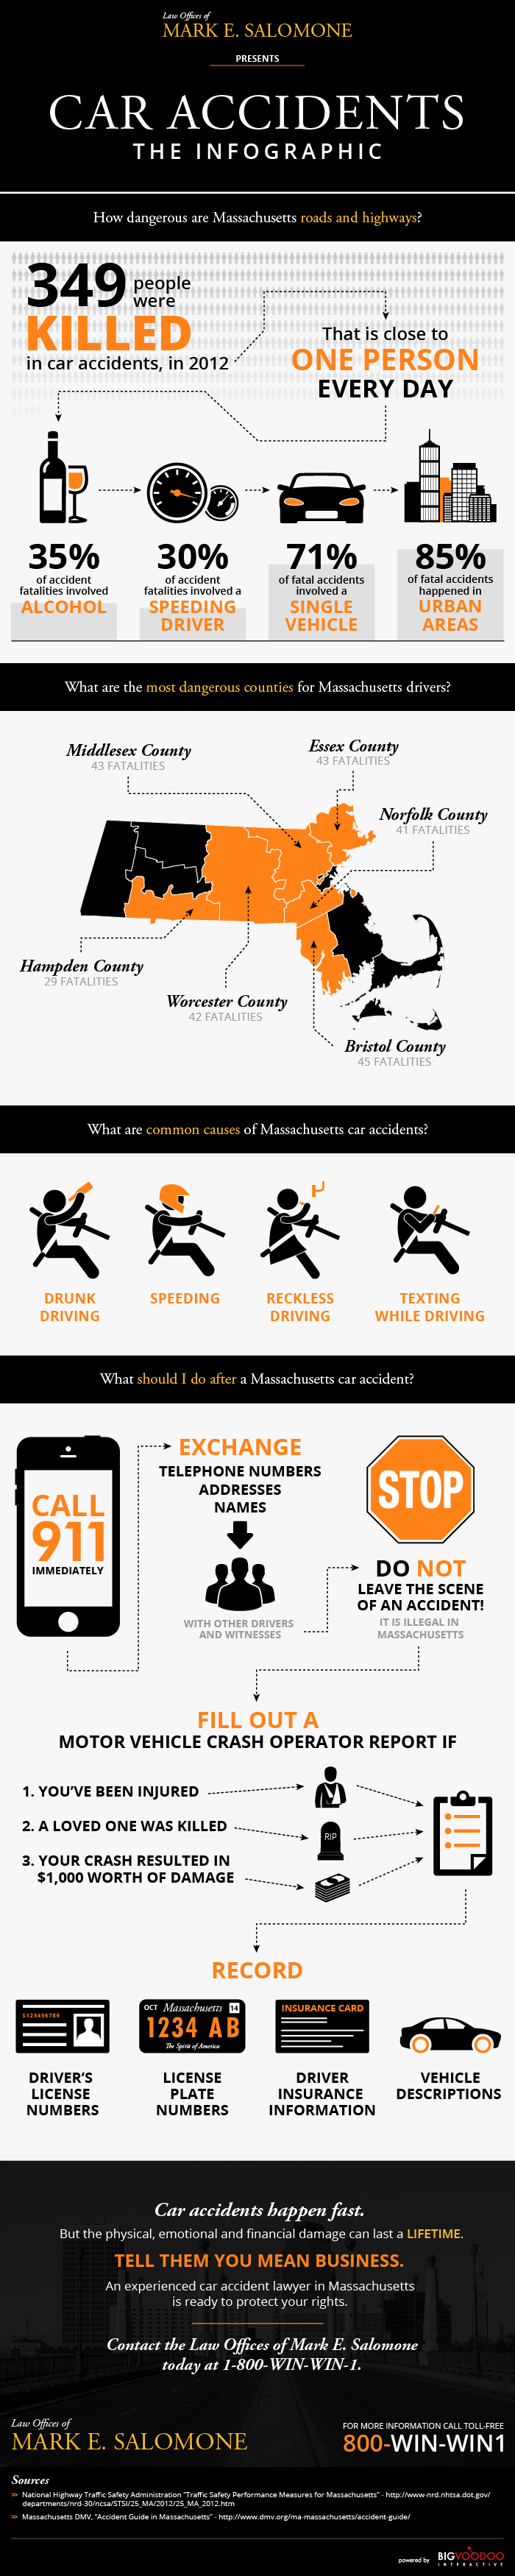 Massachusetts Car Accident Infographic